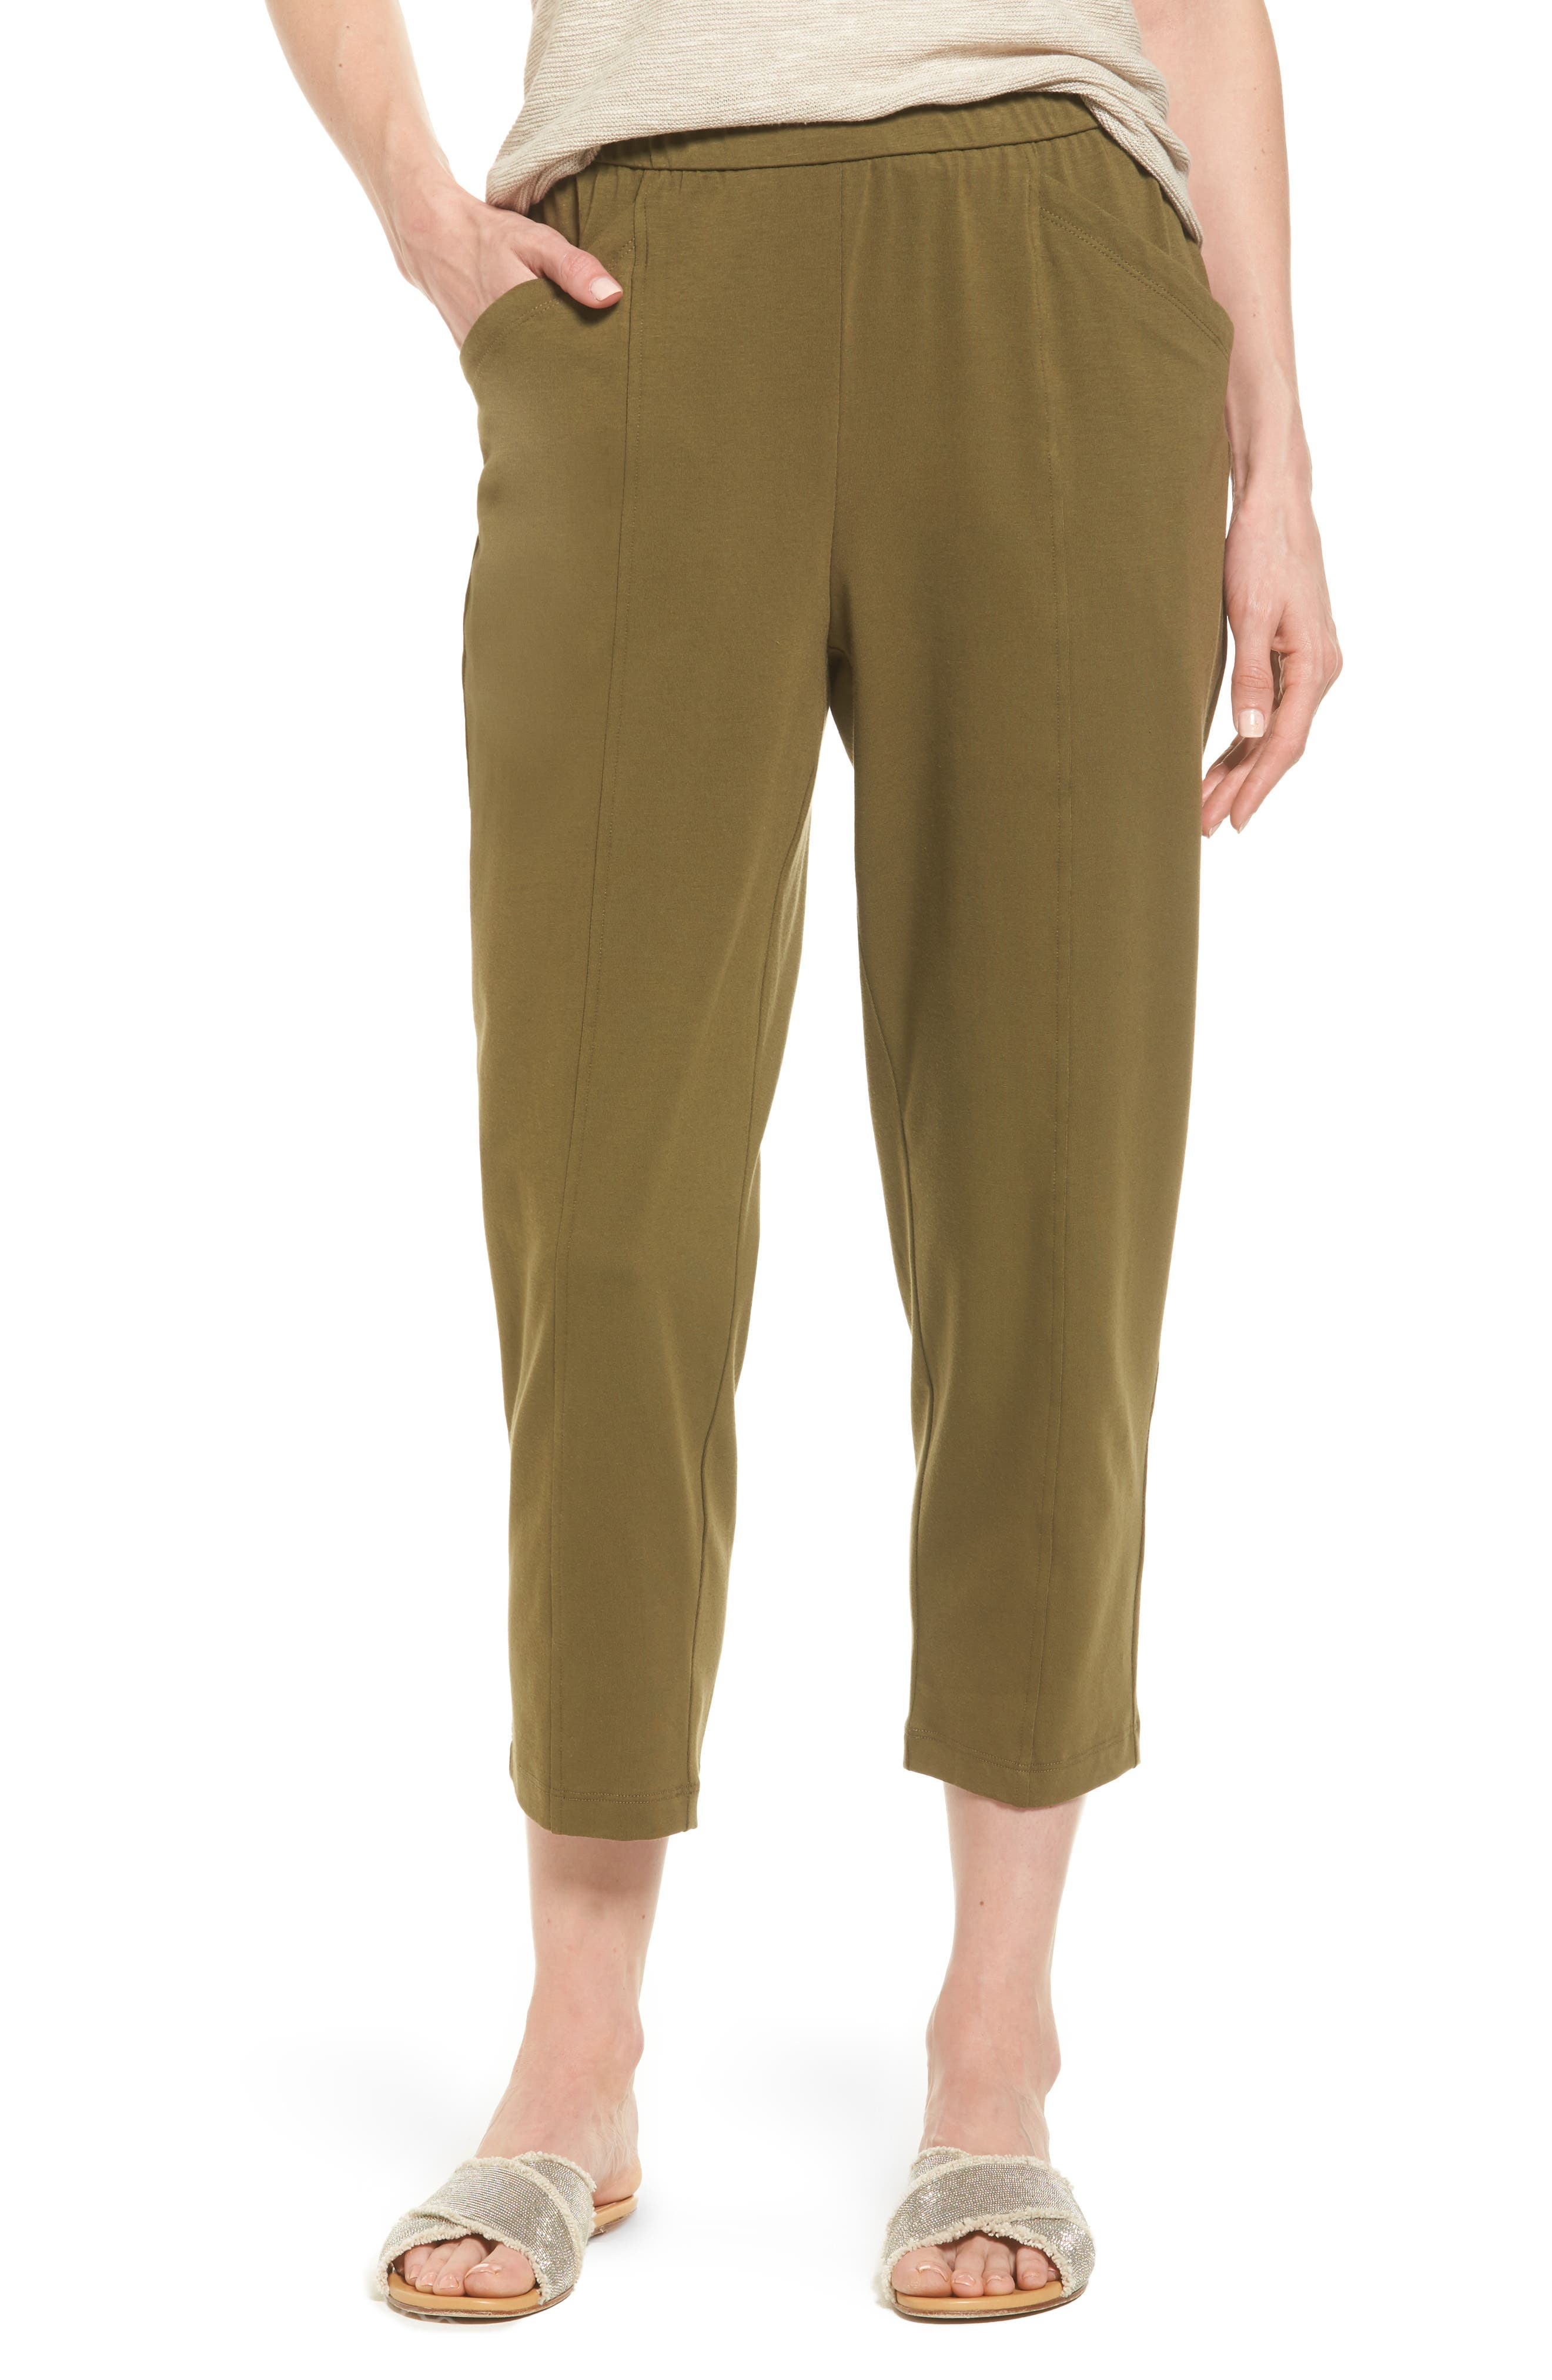 Eileen Fisher Stretch Organic Cotton Crop Pants (Regular & Petite)